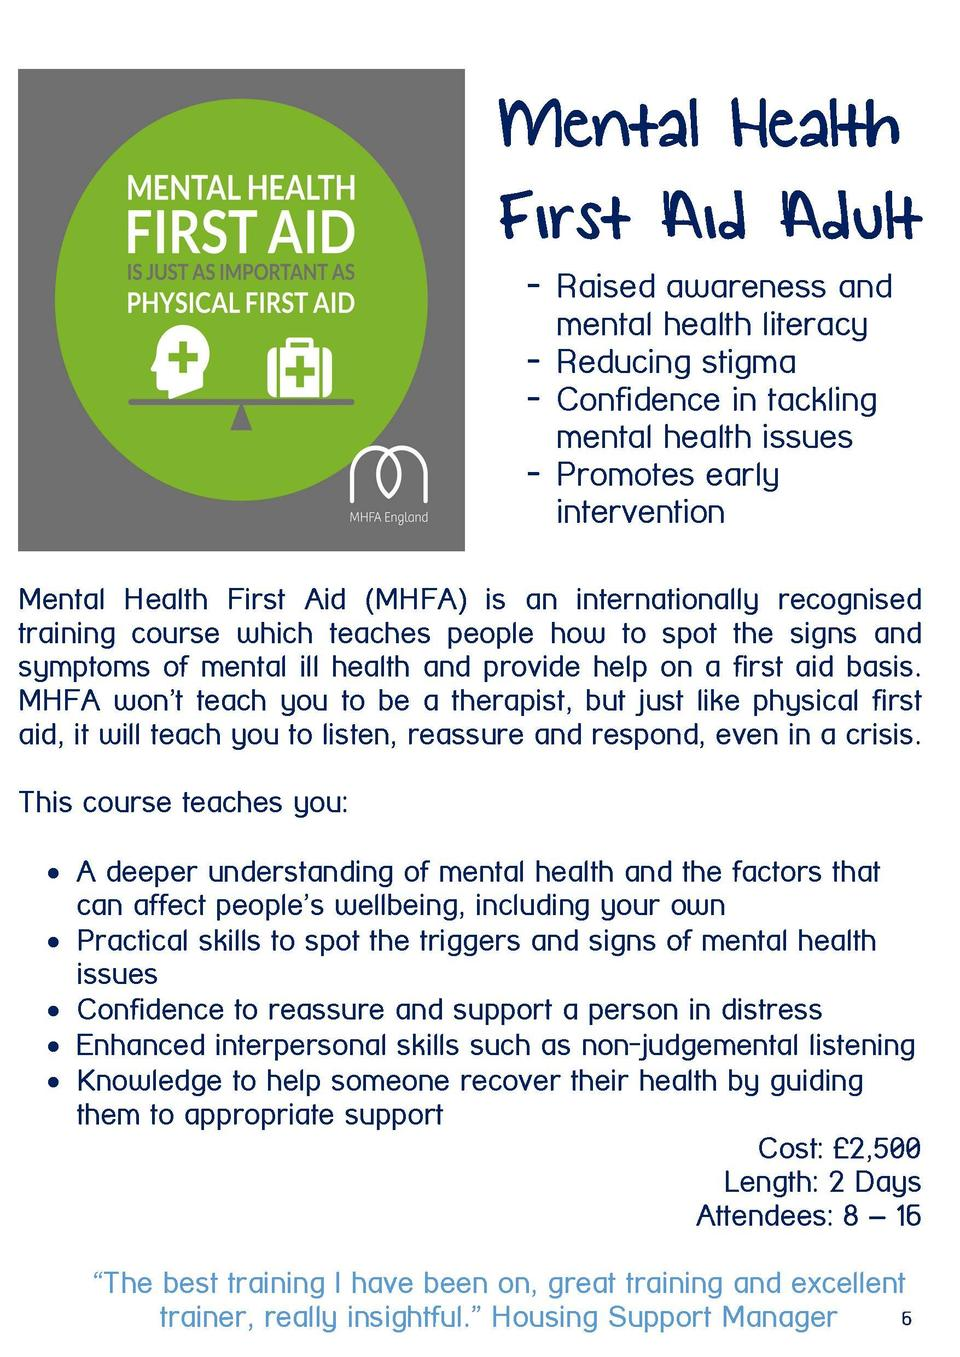 Mental Health First Aid Adult - Raised awareness and mental health literacy - Reducing stigma - Confidence in tackling men...